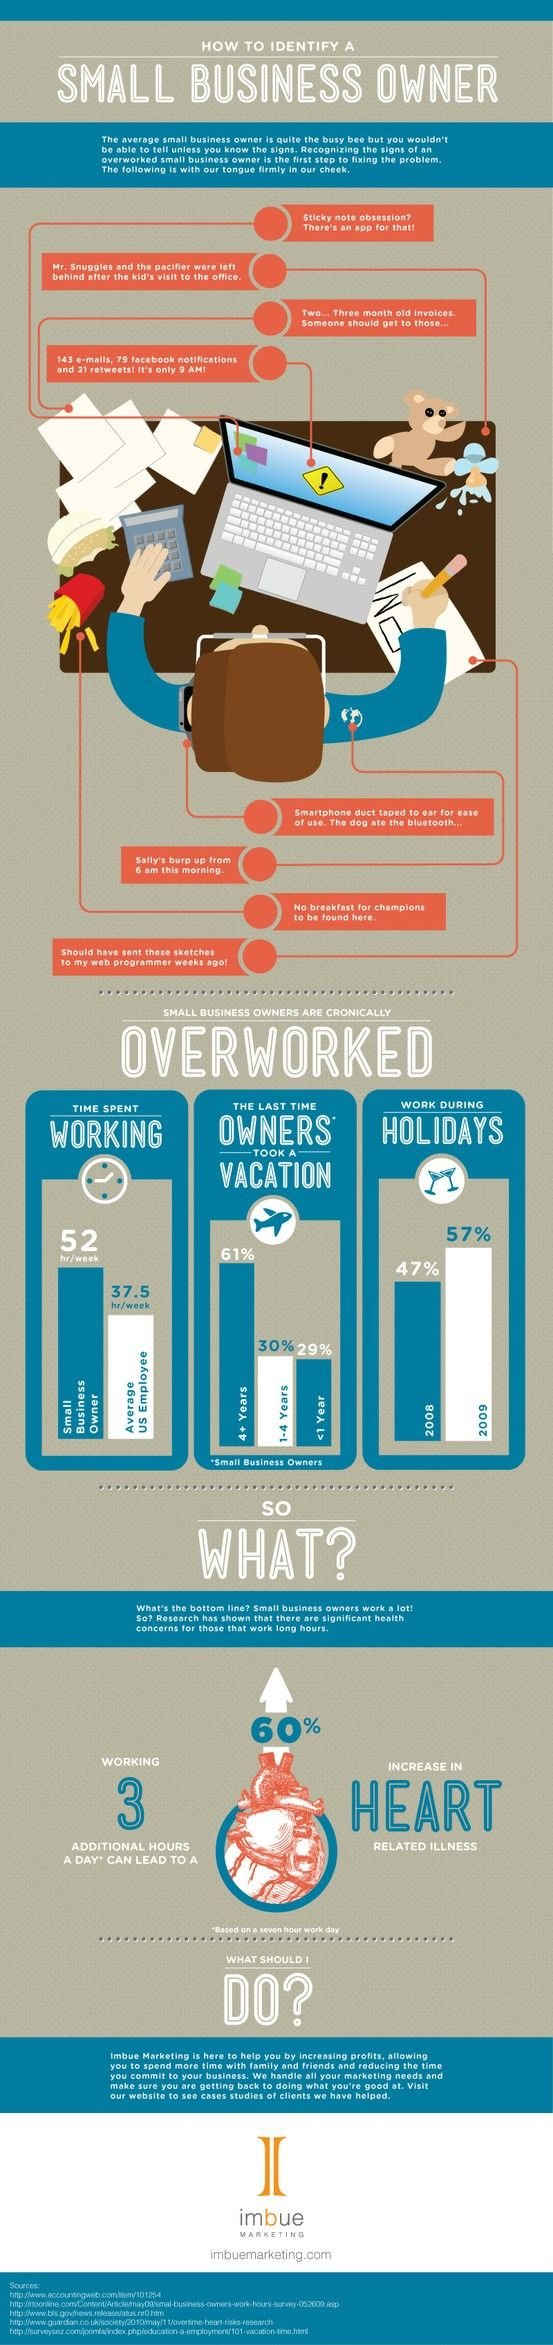 Are you an overworked small business owner? This infographic shares the signs of one.